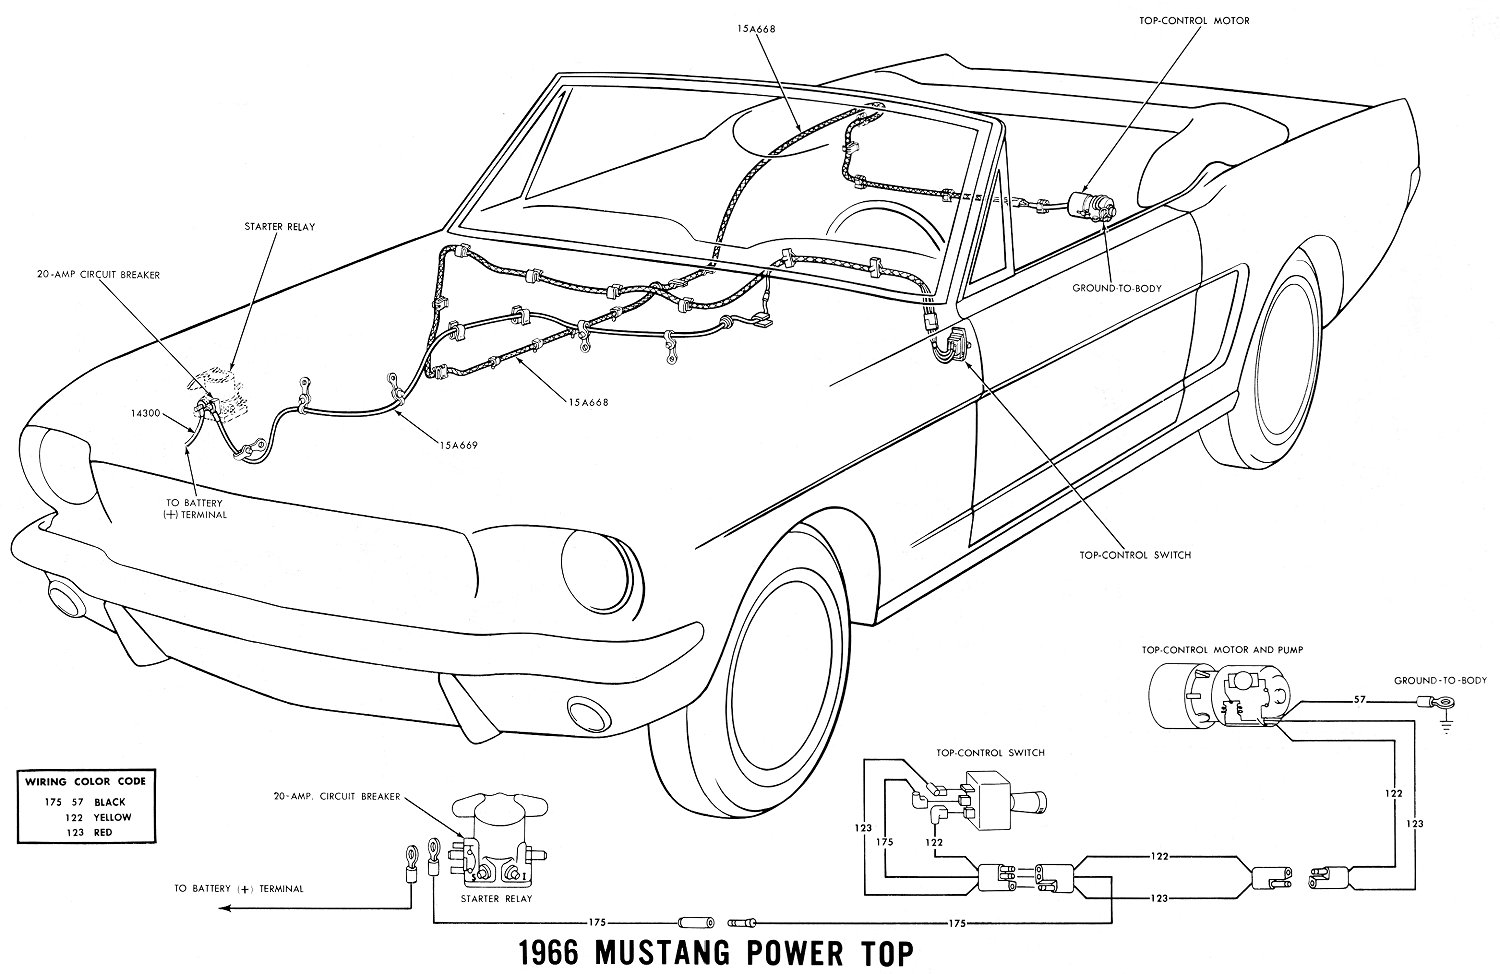 Vintage Mustang Wiring Diagrams Motor Diagram On 1965 Ford Wiper 66 Accessories Schematic Stereo Tape Player Details Power Convertible Top